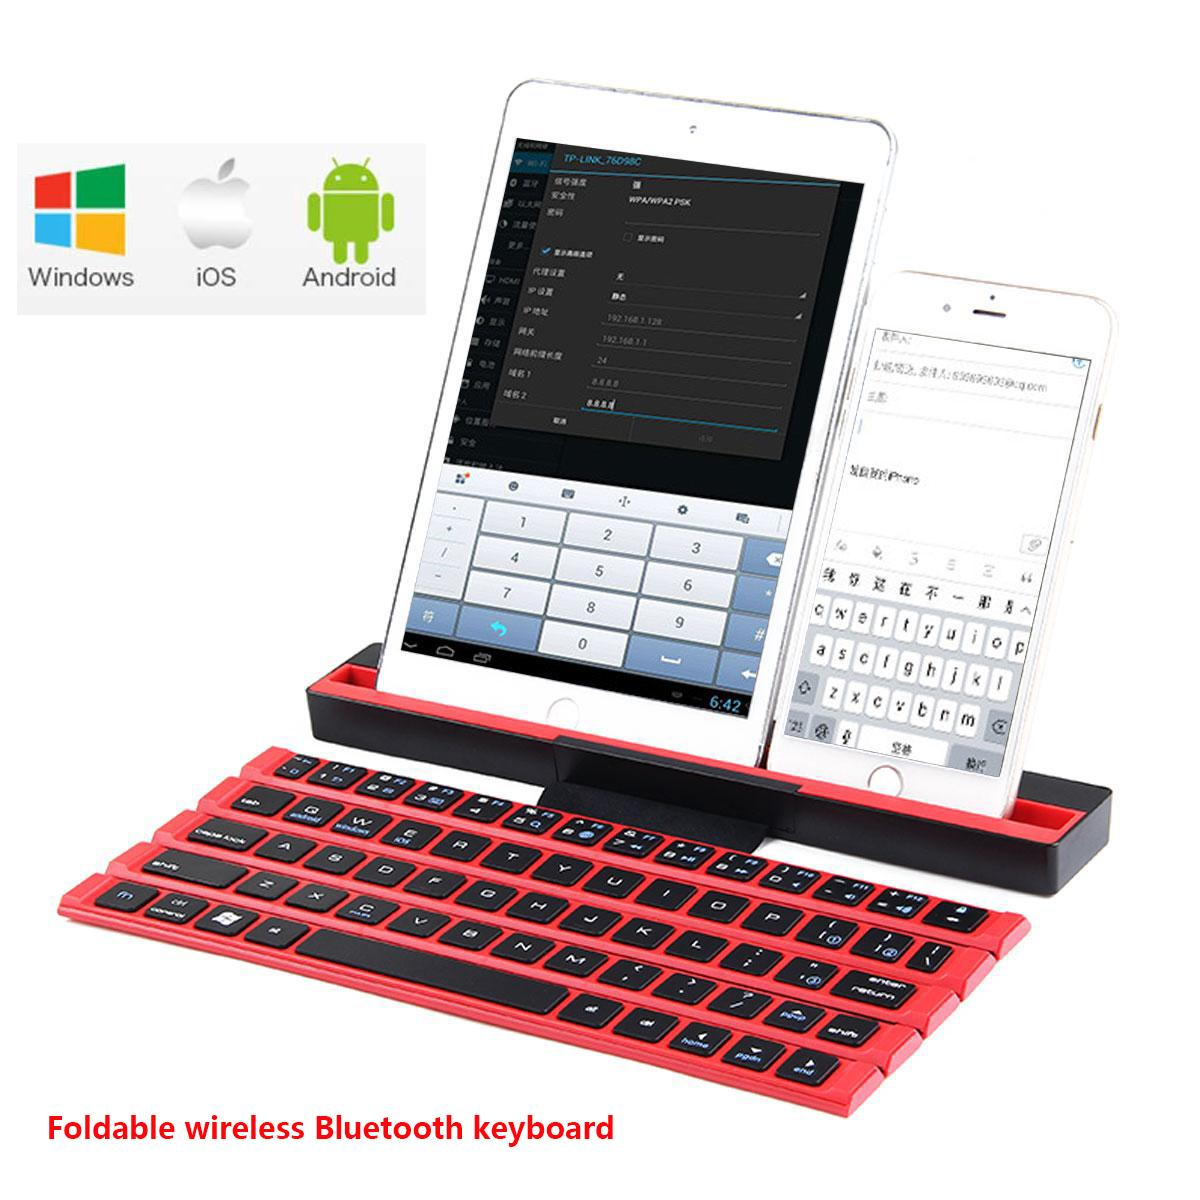 Kobwa Foldable Bluetooth Keyboard,Portable Folding Wireless Keyboard with Stand,Rollable Bluetooth Keyboard Ultra-Slim for IPad, IPhone, Tablets, Android Smartphones, IOS, Notebook, Windows, Mac